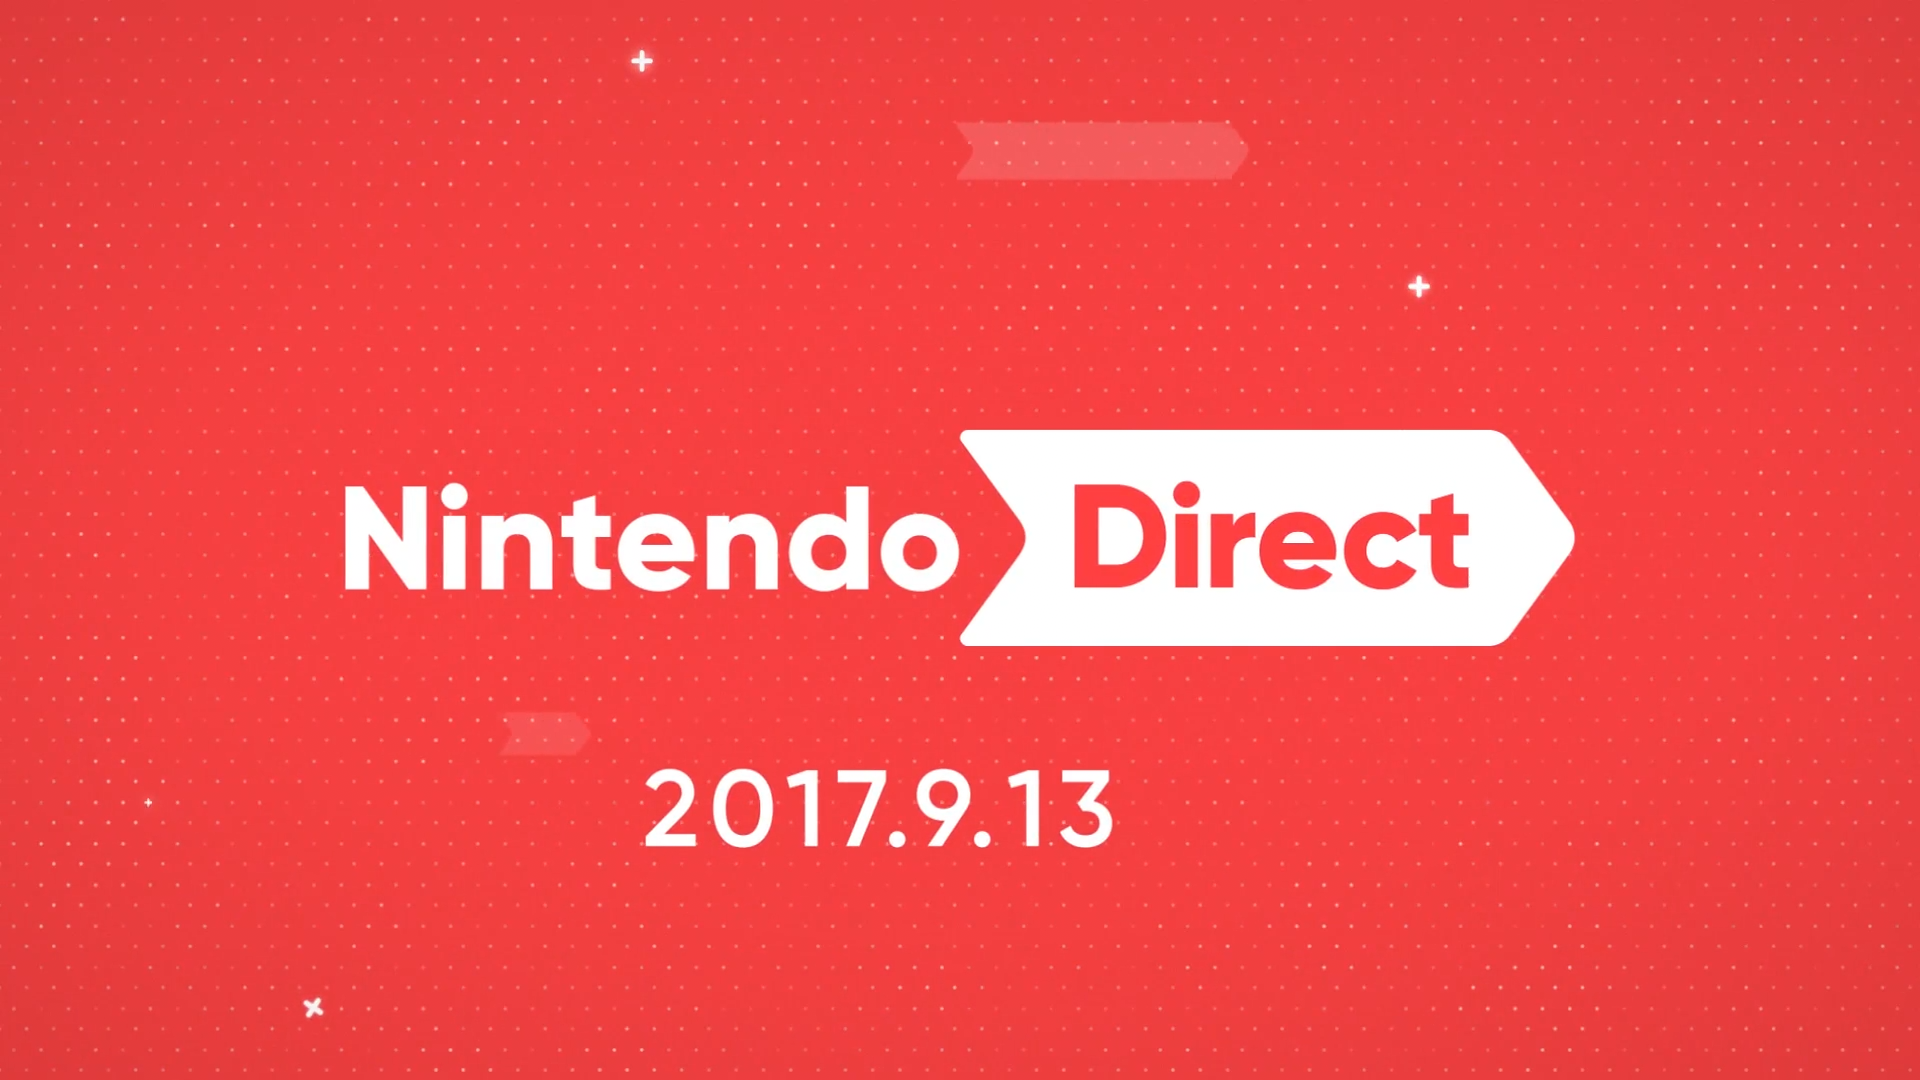 Nintendo Direct is a new online home for official and exclusive Nintendo newsbroadcast directly to you the player